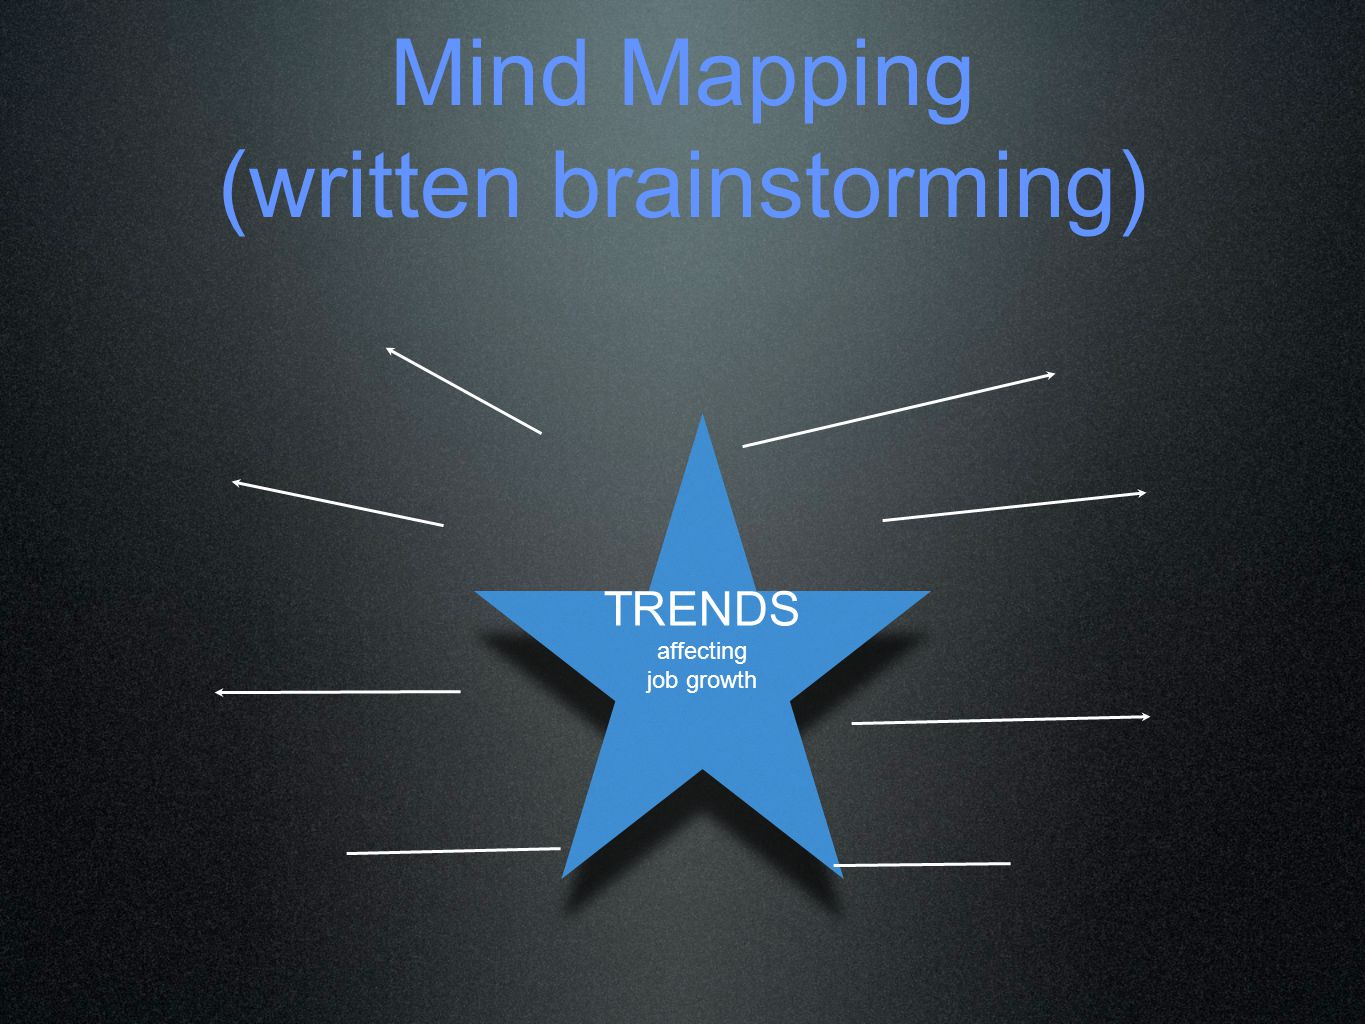 Mind Mapping (written brainstorming) TRENDS affecting job growth